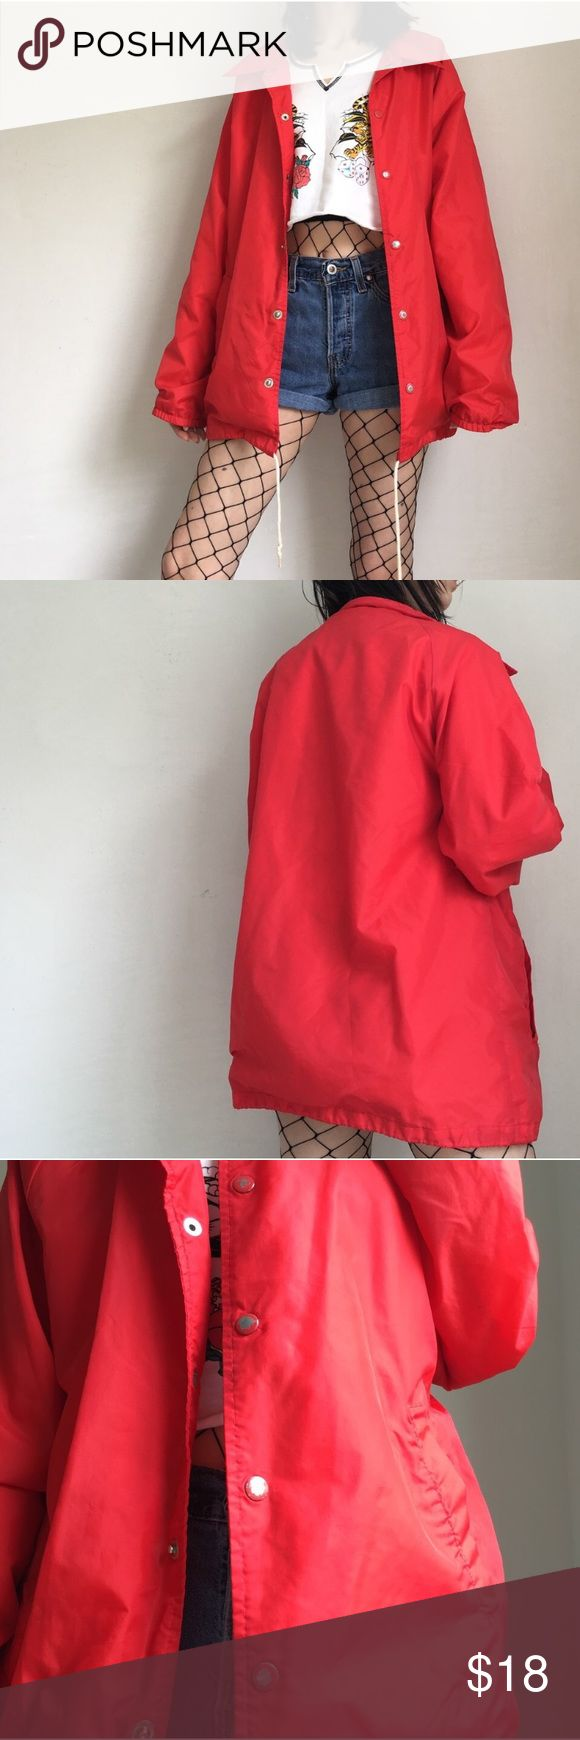 Red Windbreaker bright red windbreaker with button snaps ❤️ so cute with a soft cotton flannel interior!! the paint on the buttons is chipping and there is a few spots on the inside near the arm, but overall in great condition. has two pockets and an interior pocket. size men's small. let me know if u have any questions ✨ Jackets & Coats